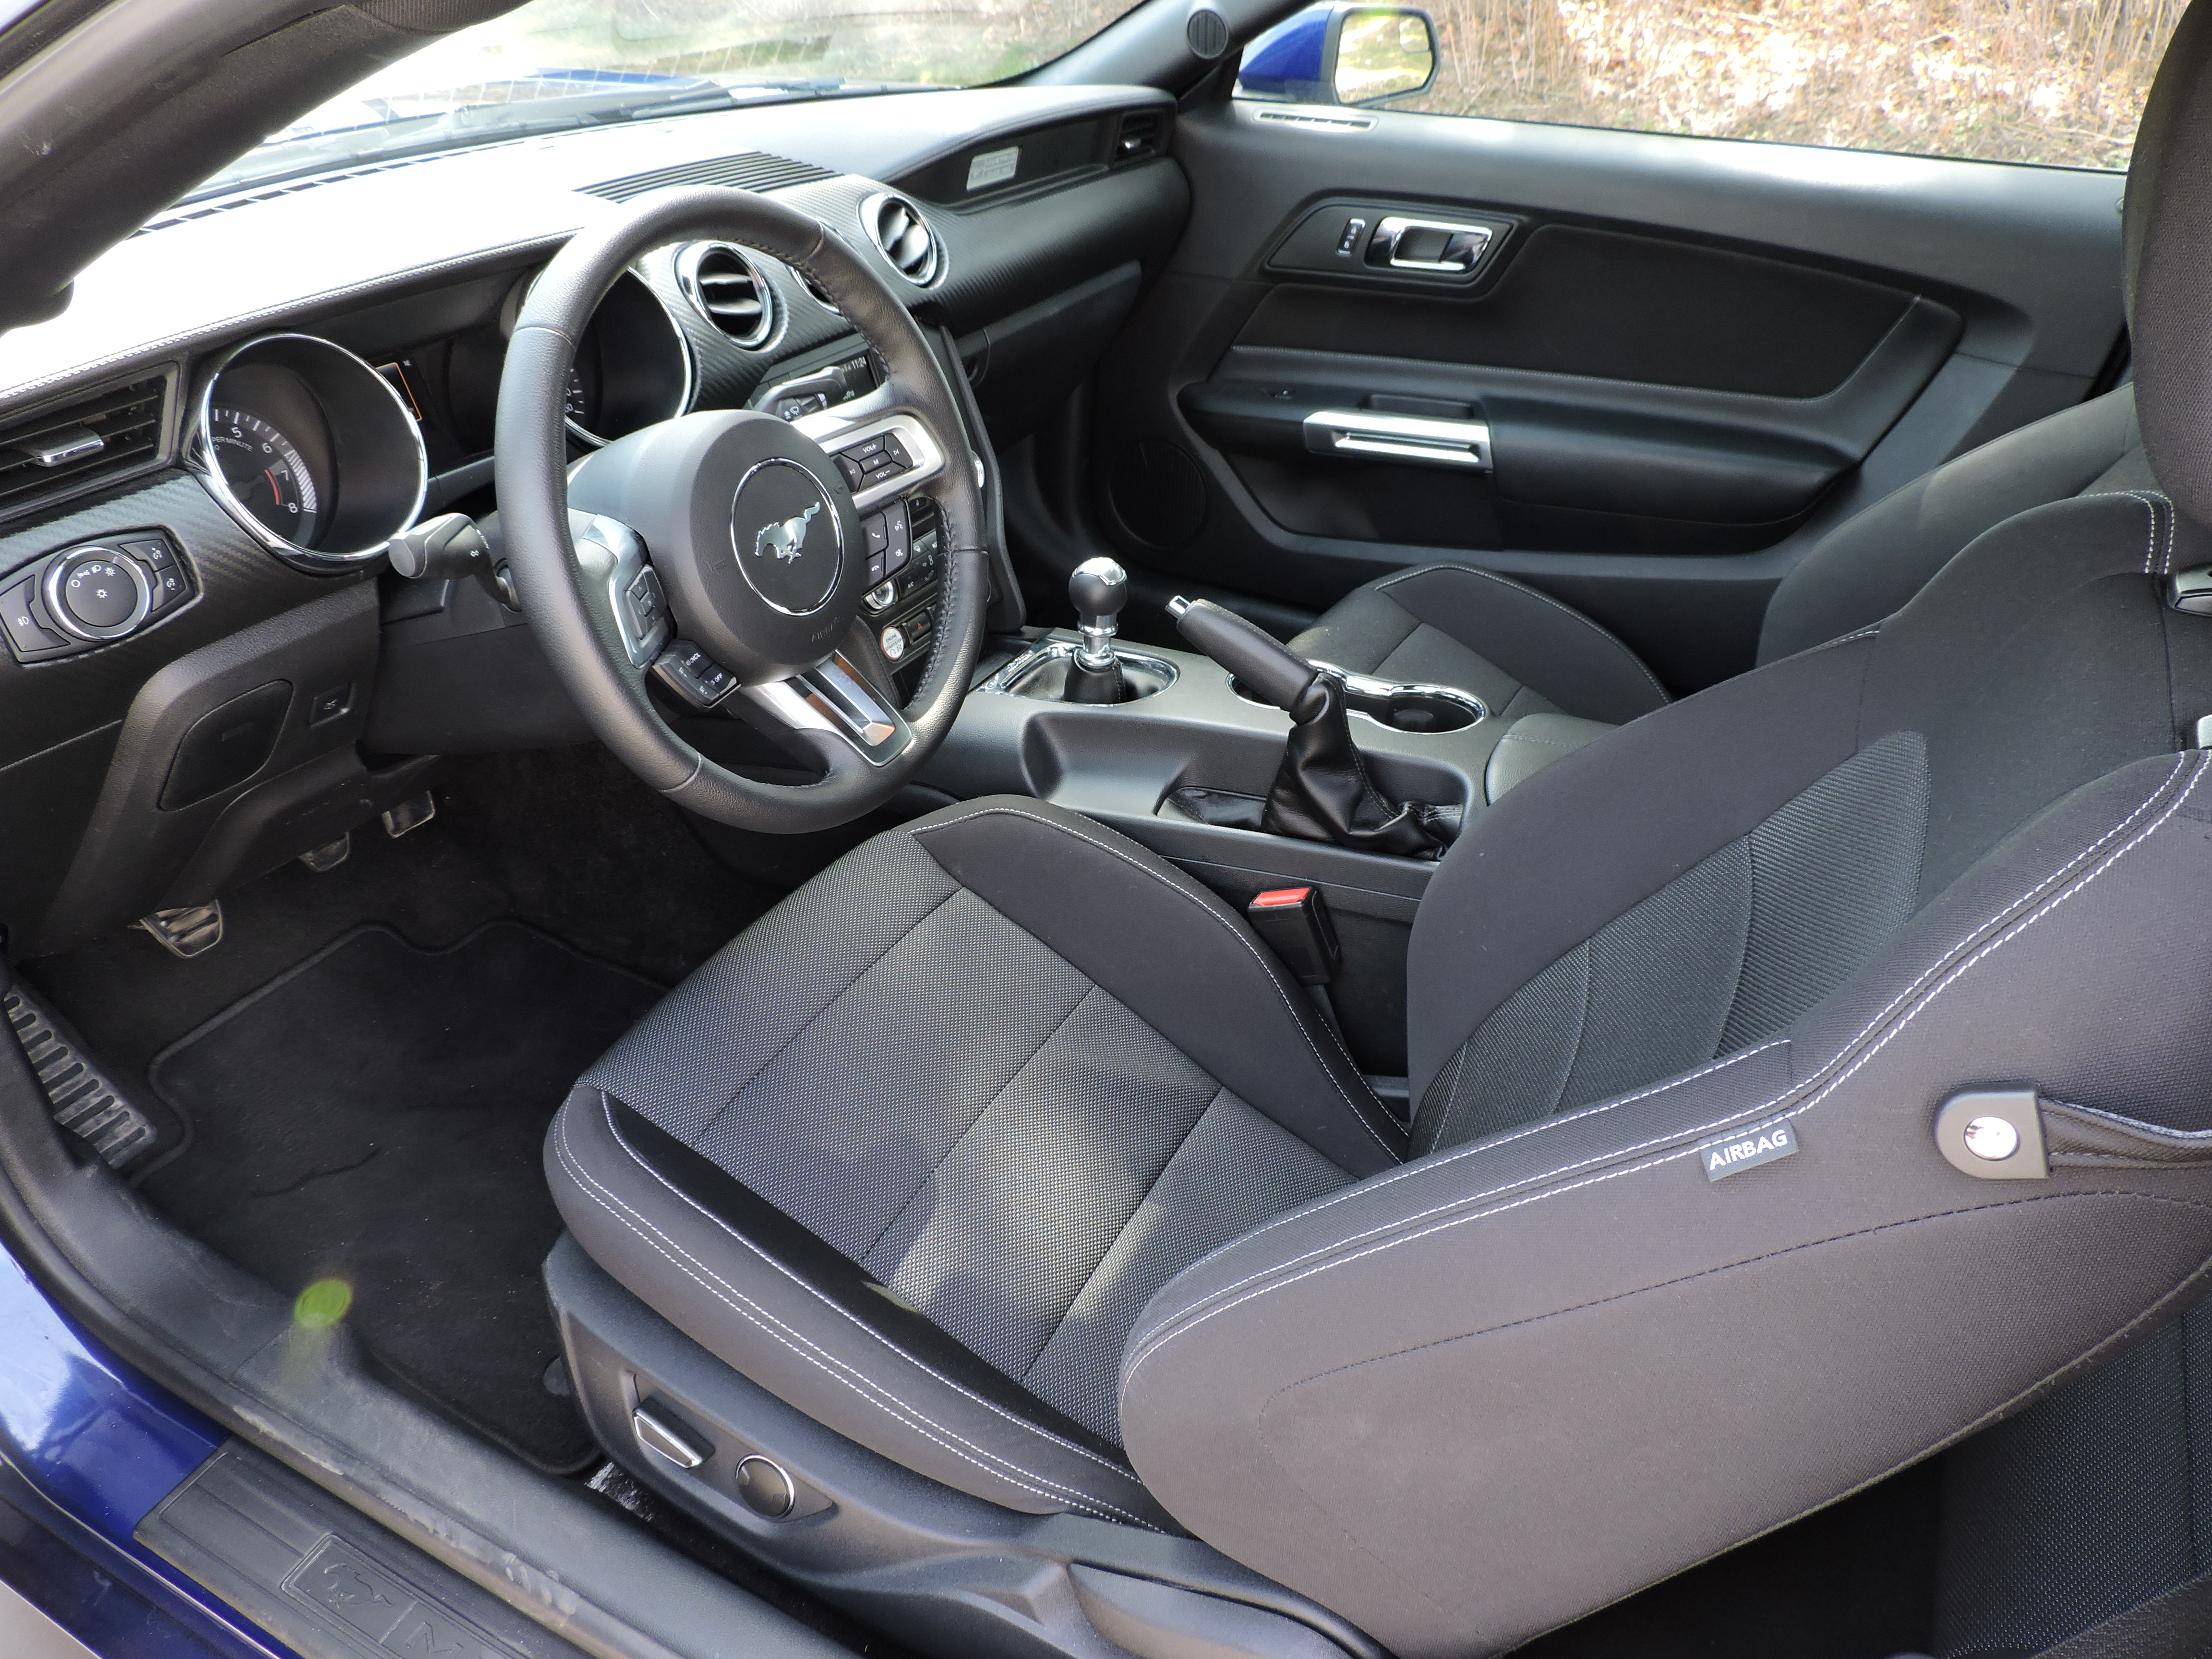 2014 mustang cloth interior images for Ford mustang 2015 interior